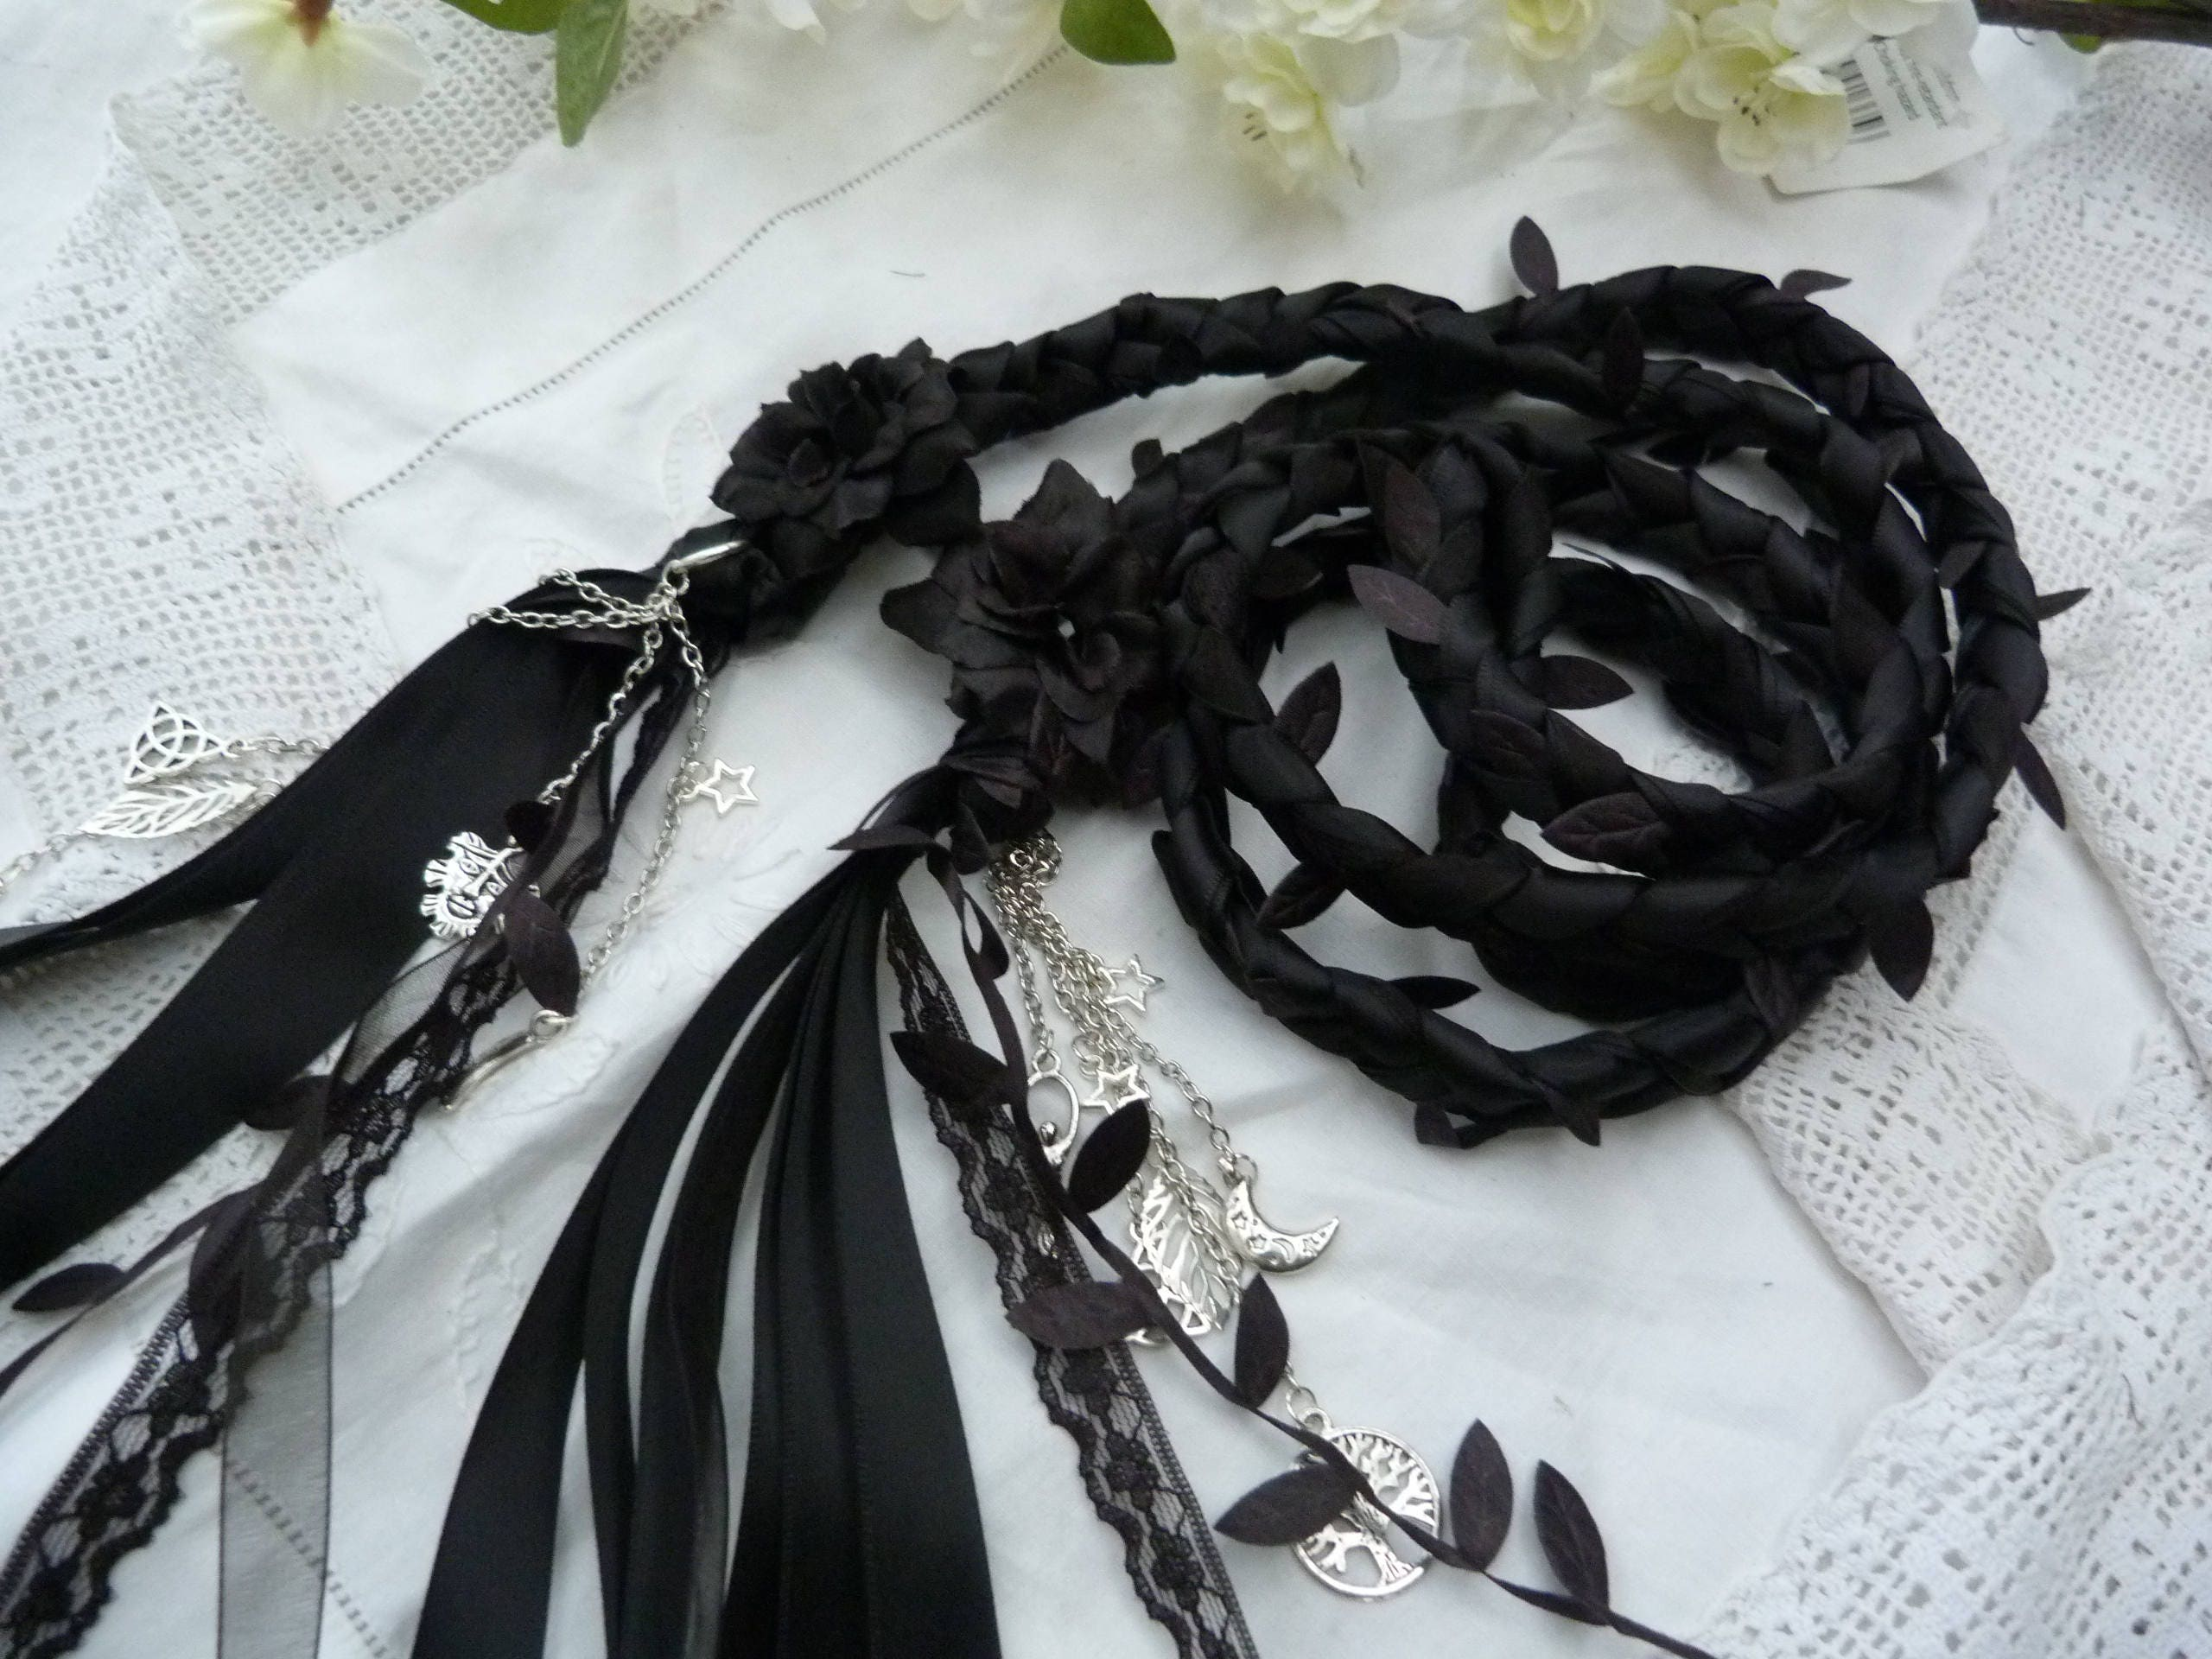 Black lace Handfasting wedding binding cord All Black with lace, chiffon, satin, leaves, hand stitched flowers silver charms samhain